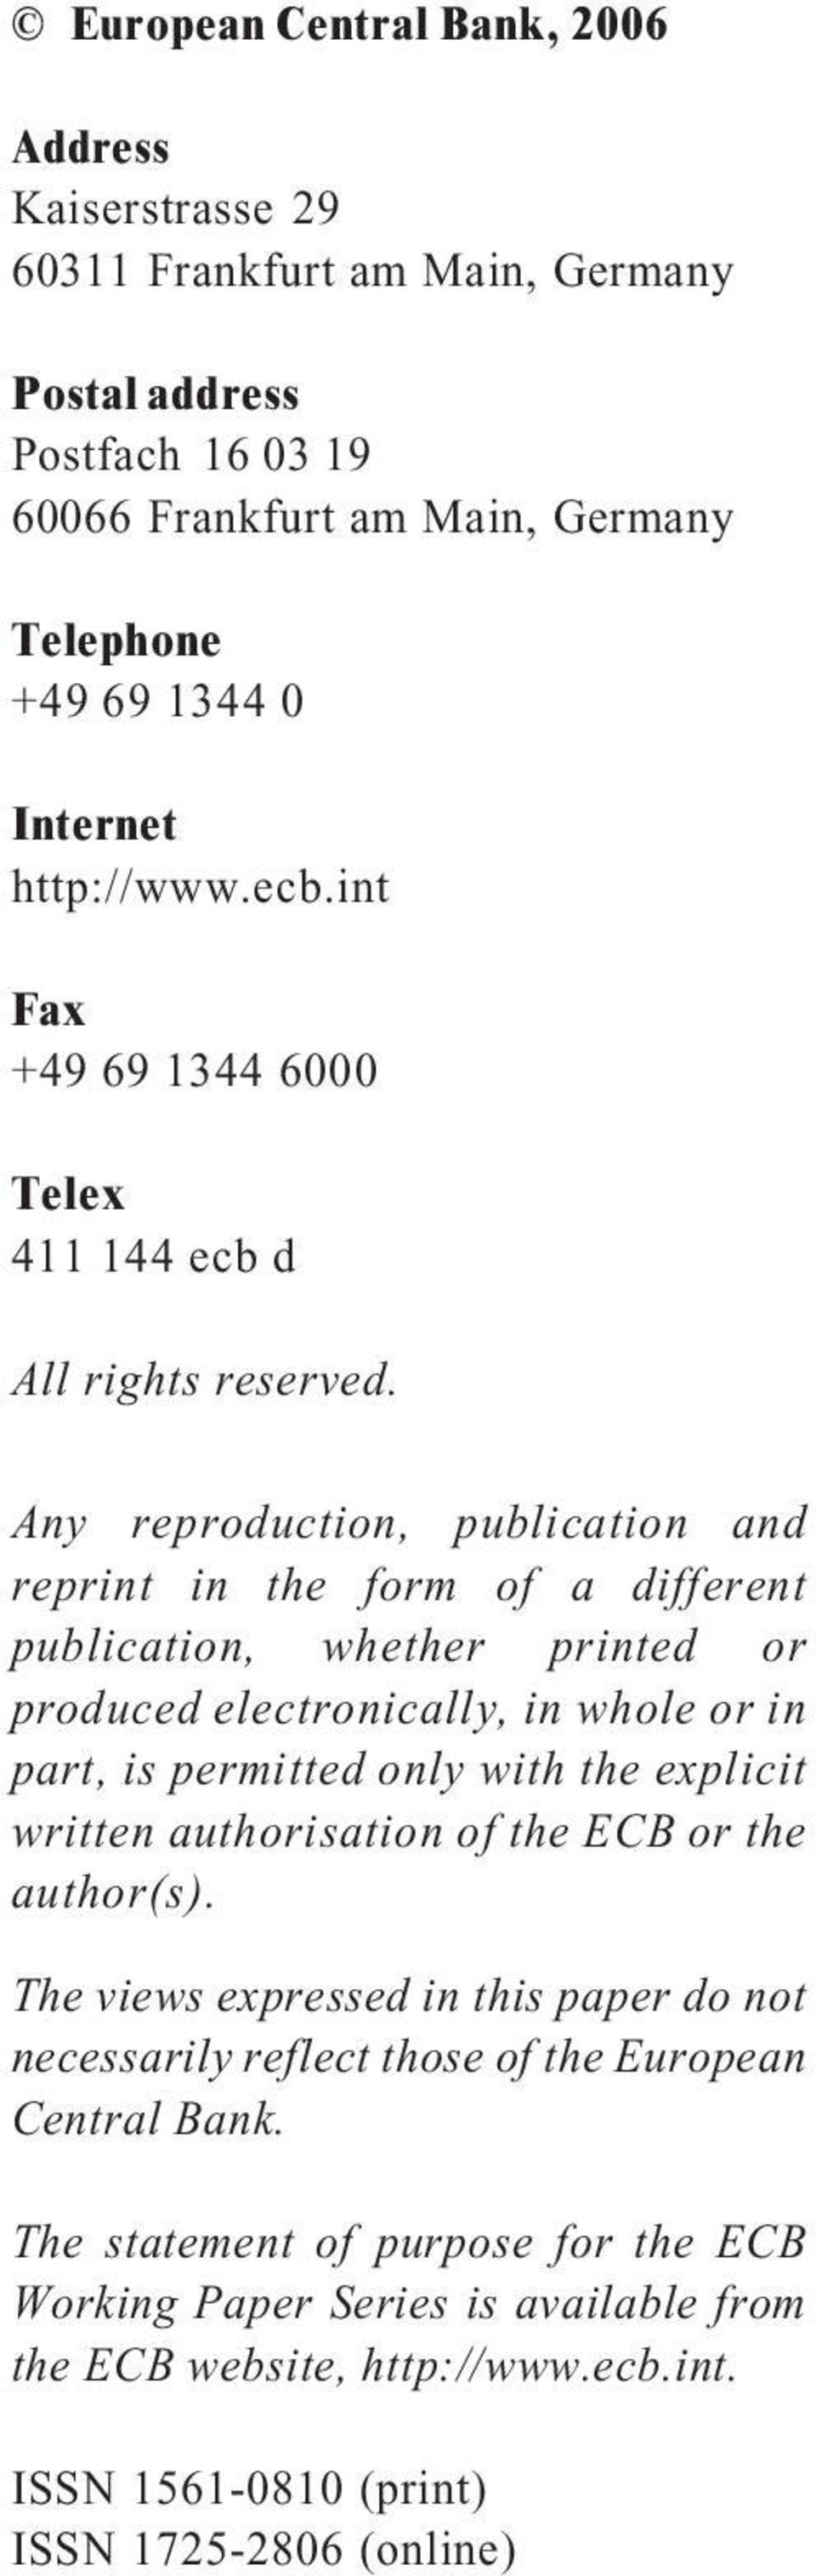 Any reproduction, publication and reprint in the form of a different publication, whether printed or produced electronically, in whole or in part, is permitted only with the explicit